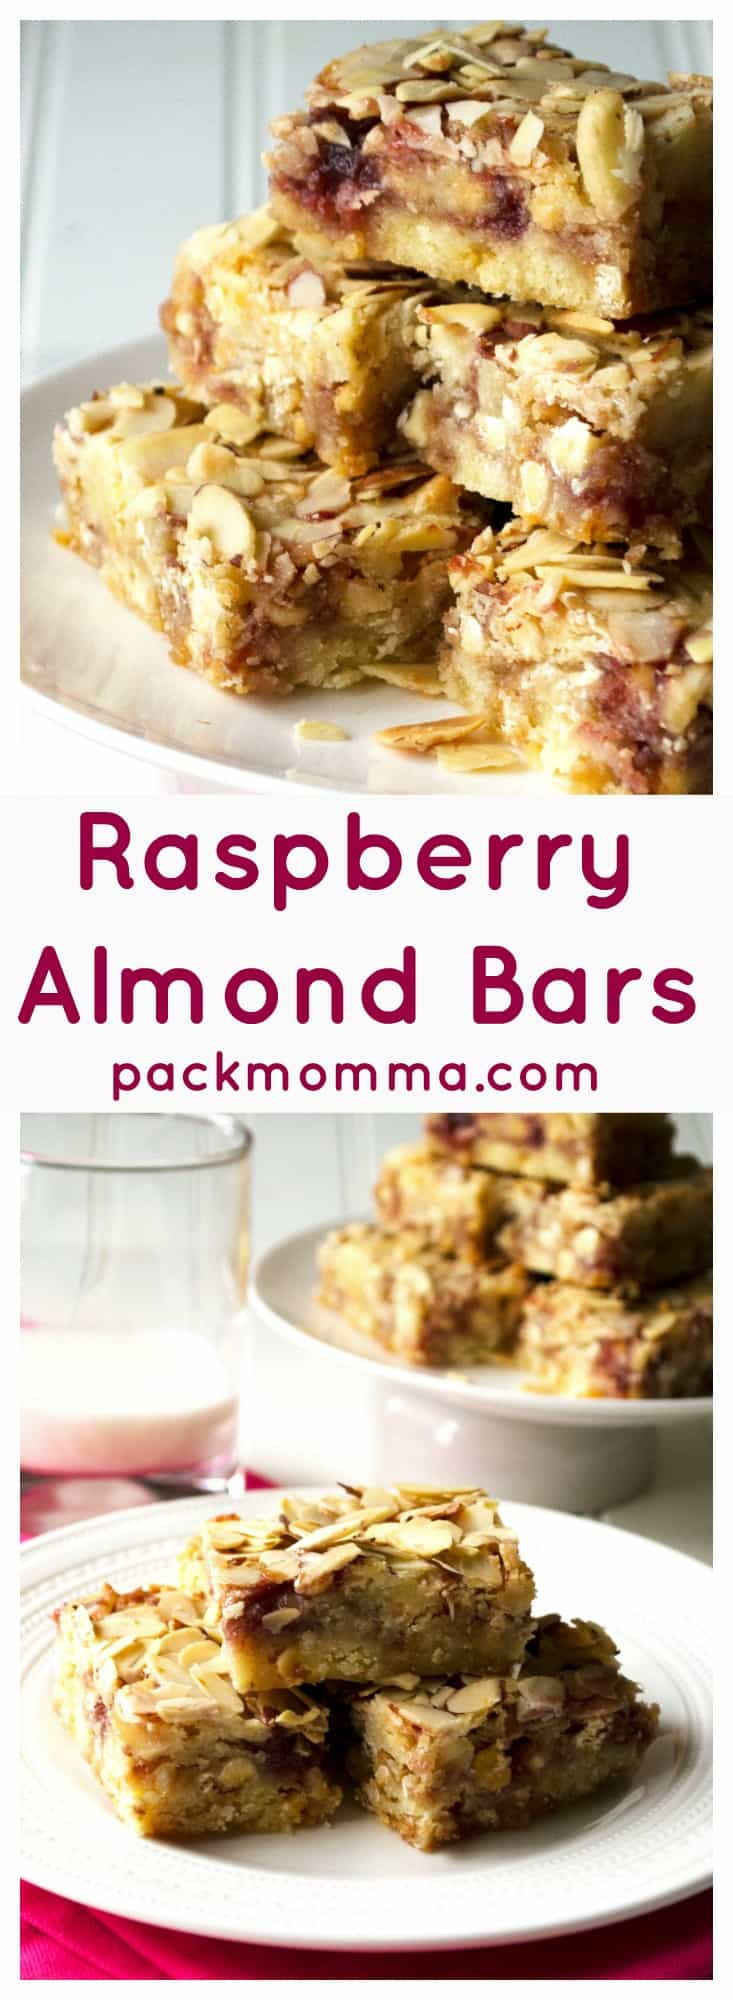 Raspberry Almond Bars | Raspberry Almond Bars are tart, sweet and packed with almond flavor. These are an easy crowd pleasing dessert treat that is sure to be your new favorite. | Pack Momma | www.packmomma.com